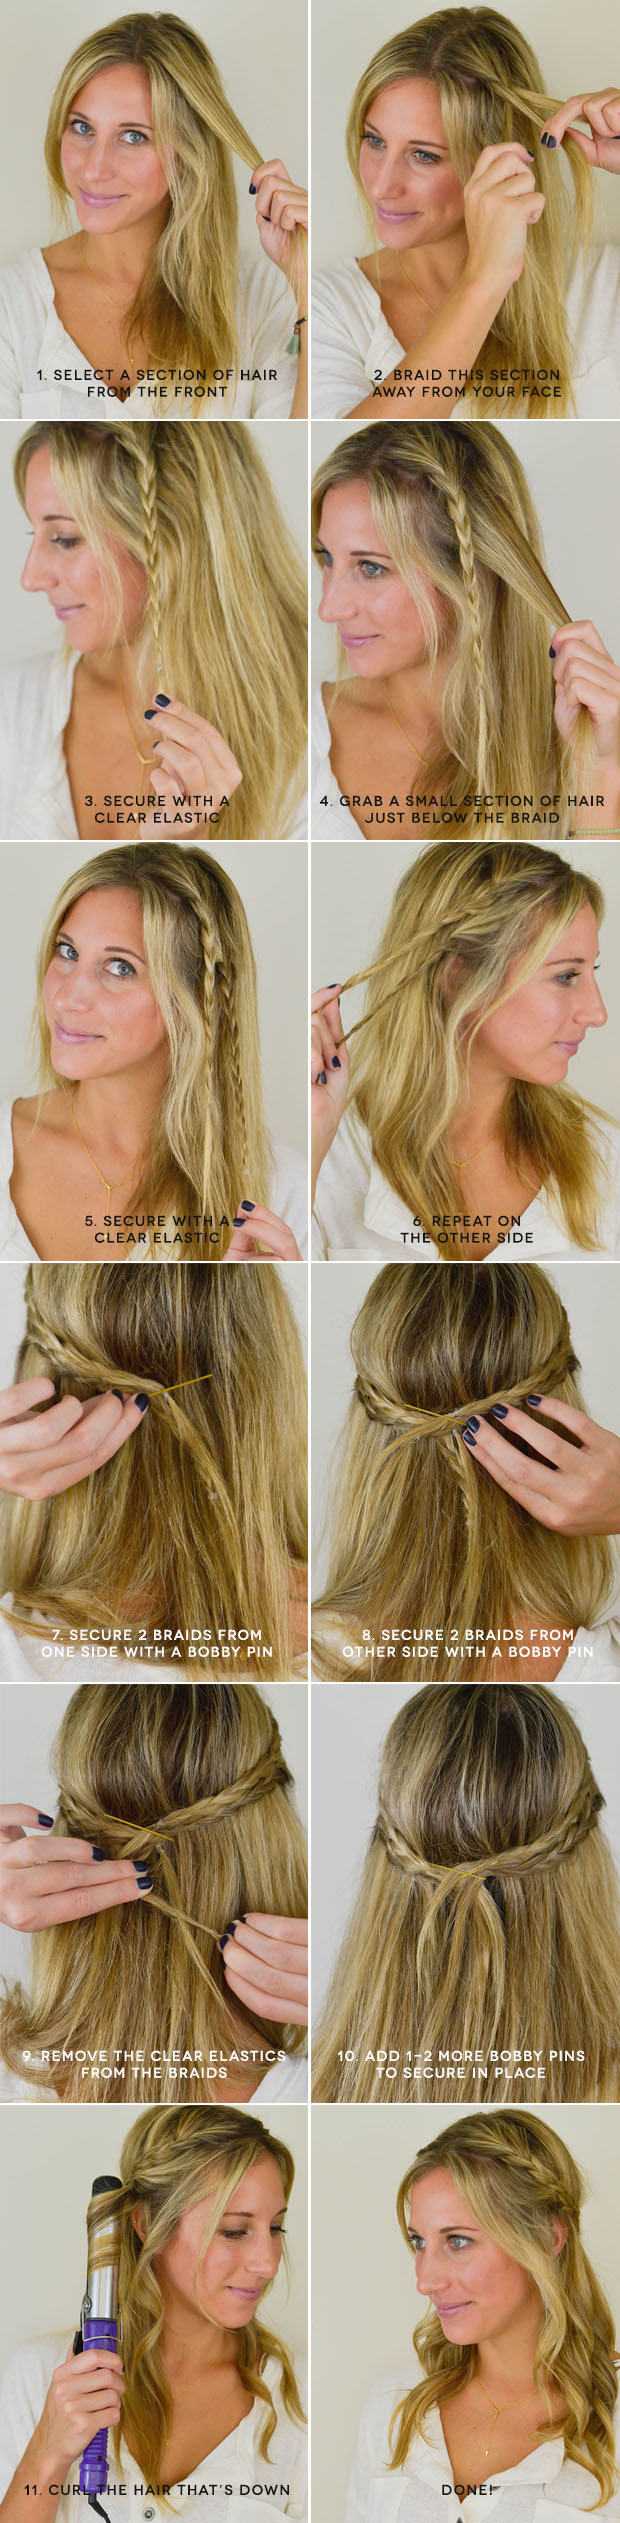 braided-halfup-tutorial